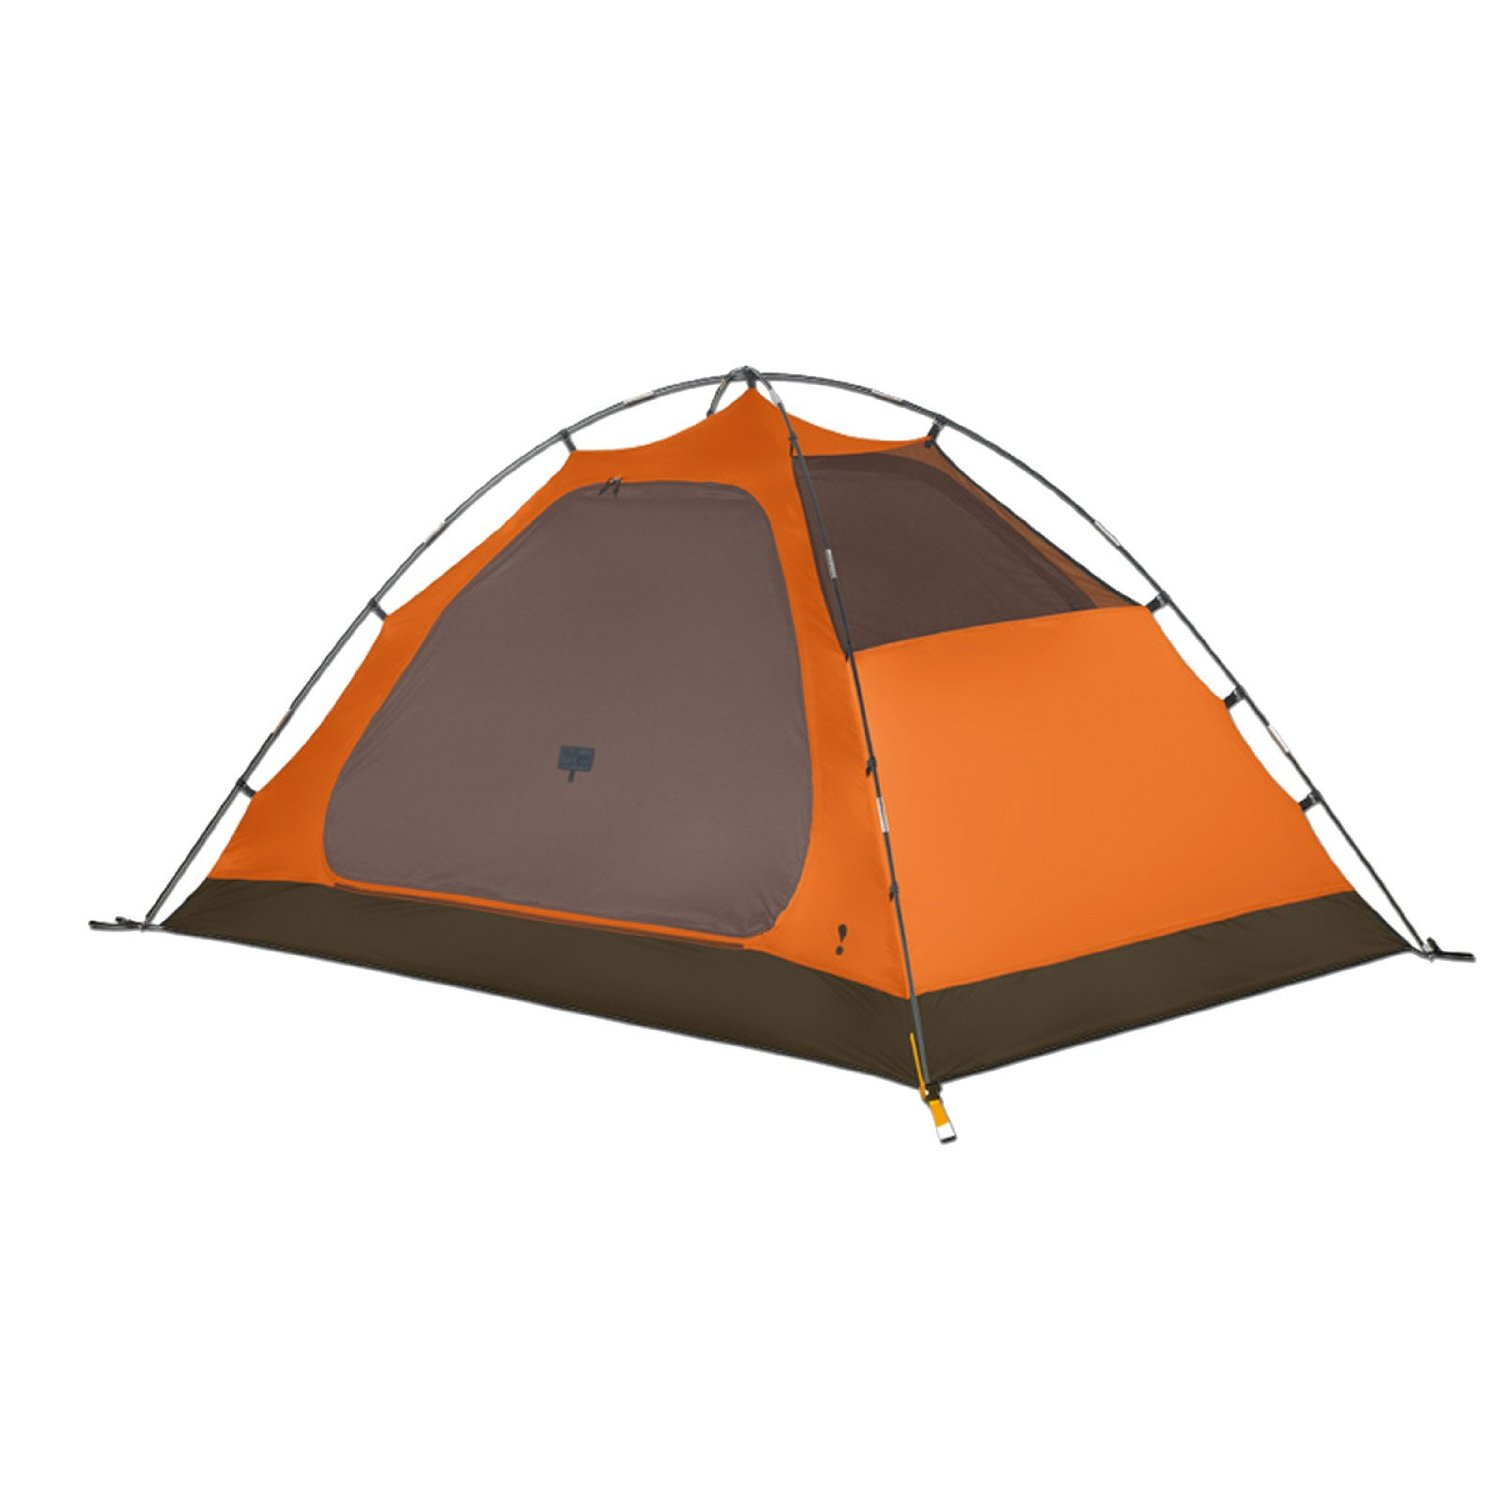 Top 10 Best Backpacking Tents